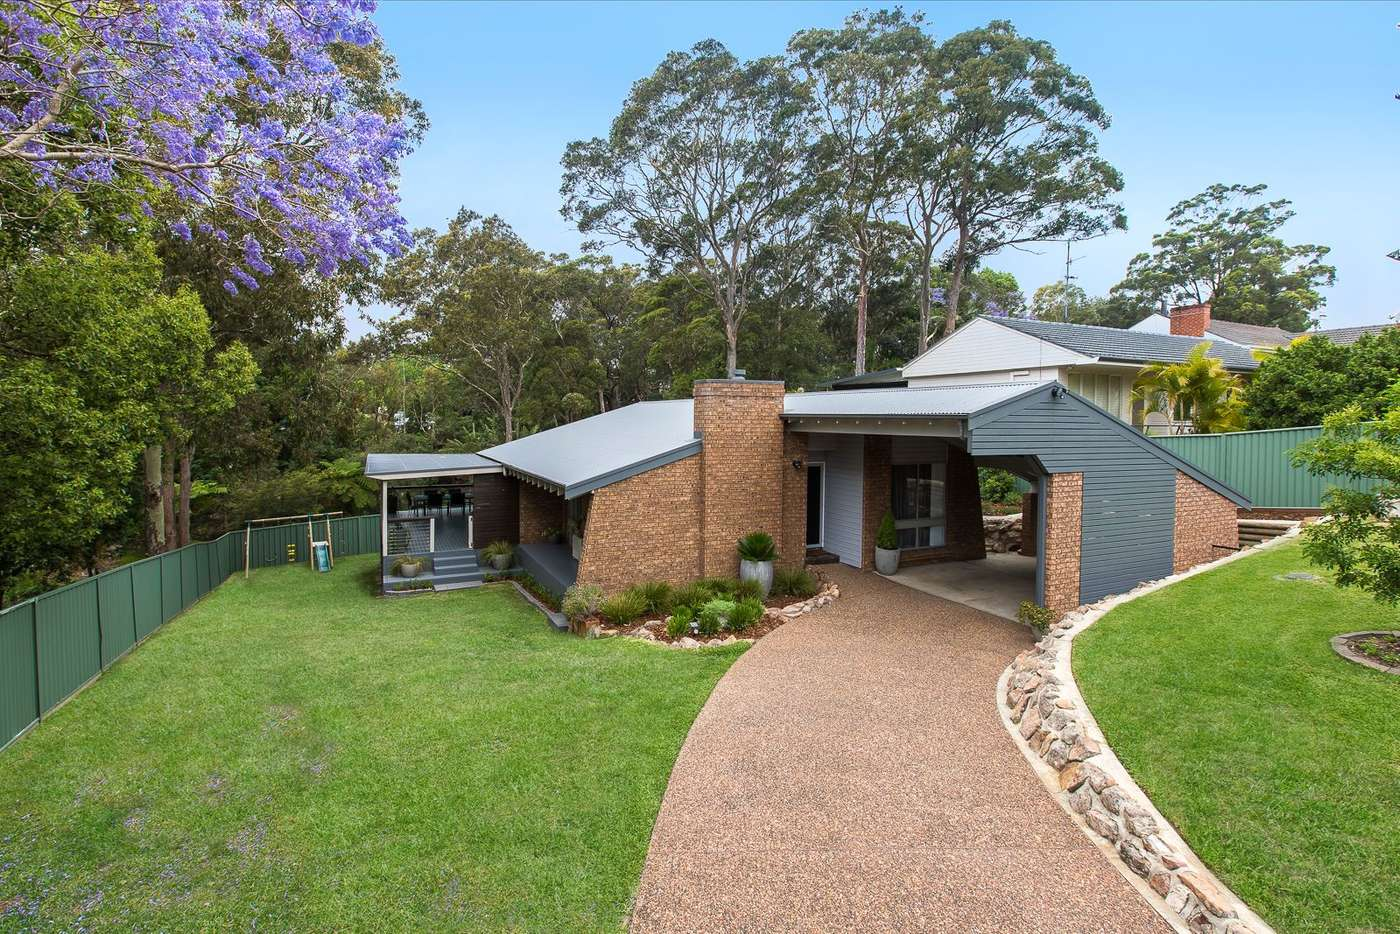 Main view of Homely house listing, 17 Goola Avenue, Kahibah NSW 2290